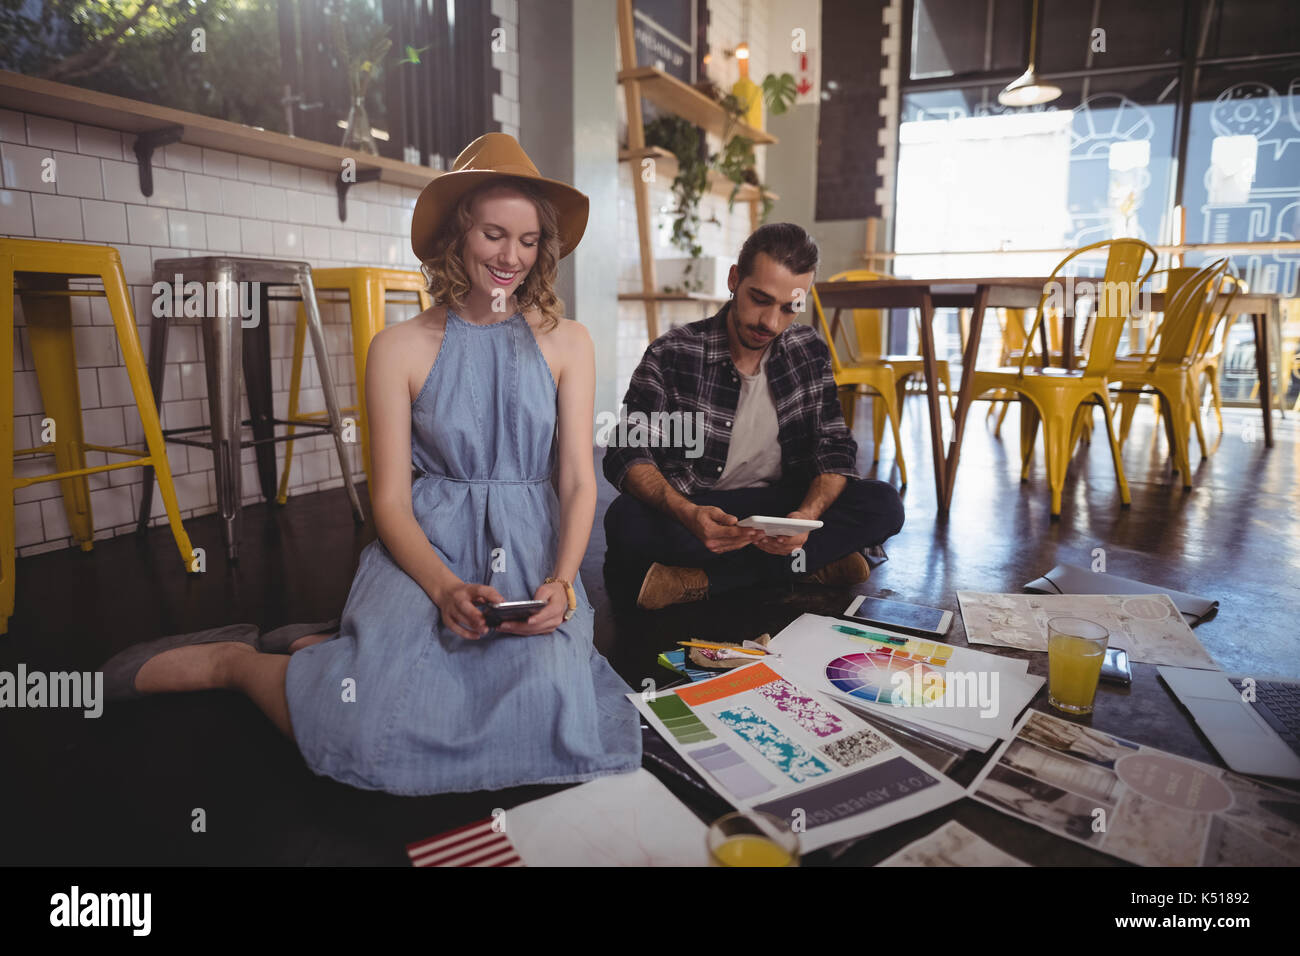 Young creative professionals using technologies while sitting with sheets on floor at coffee shop - Stock Image